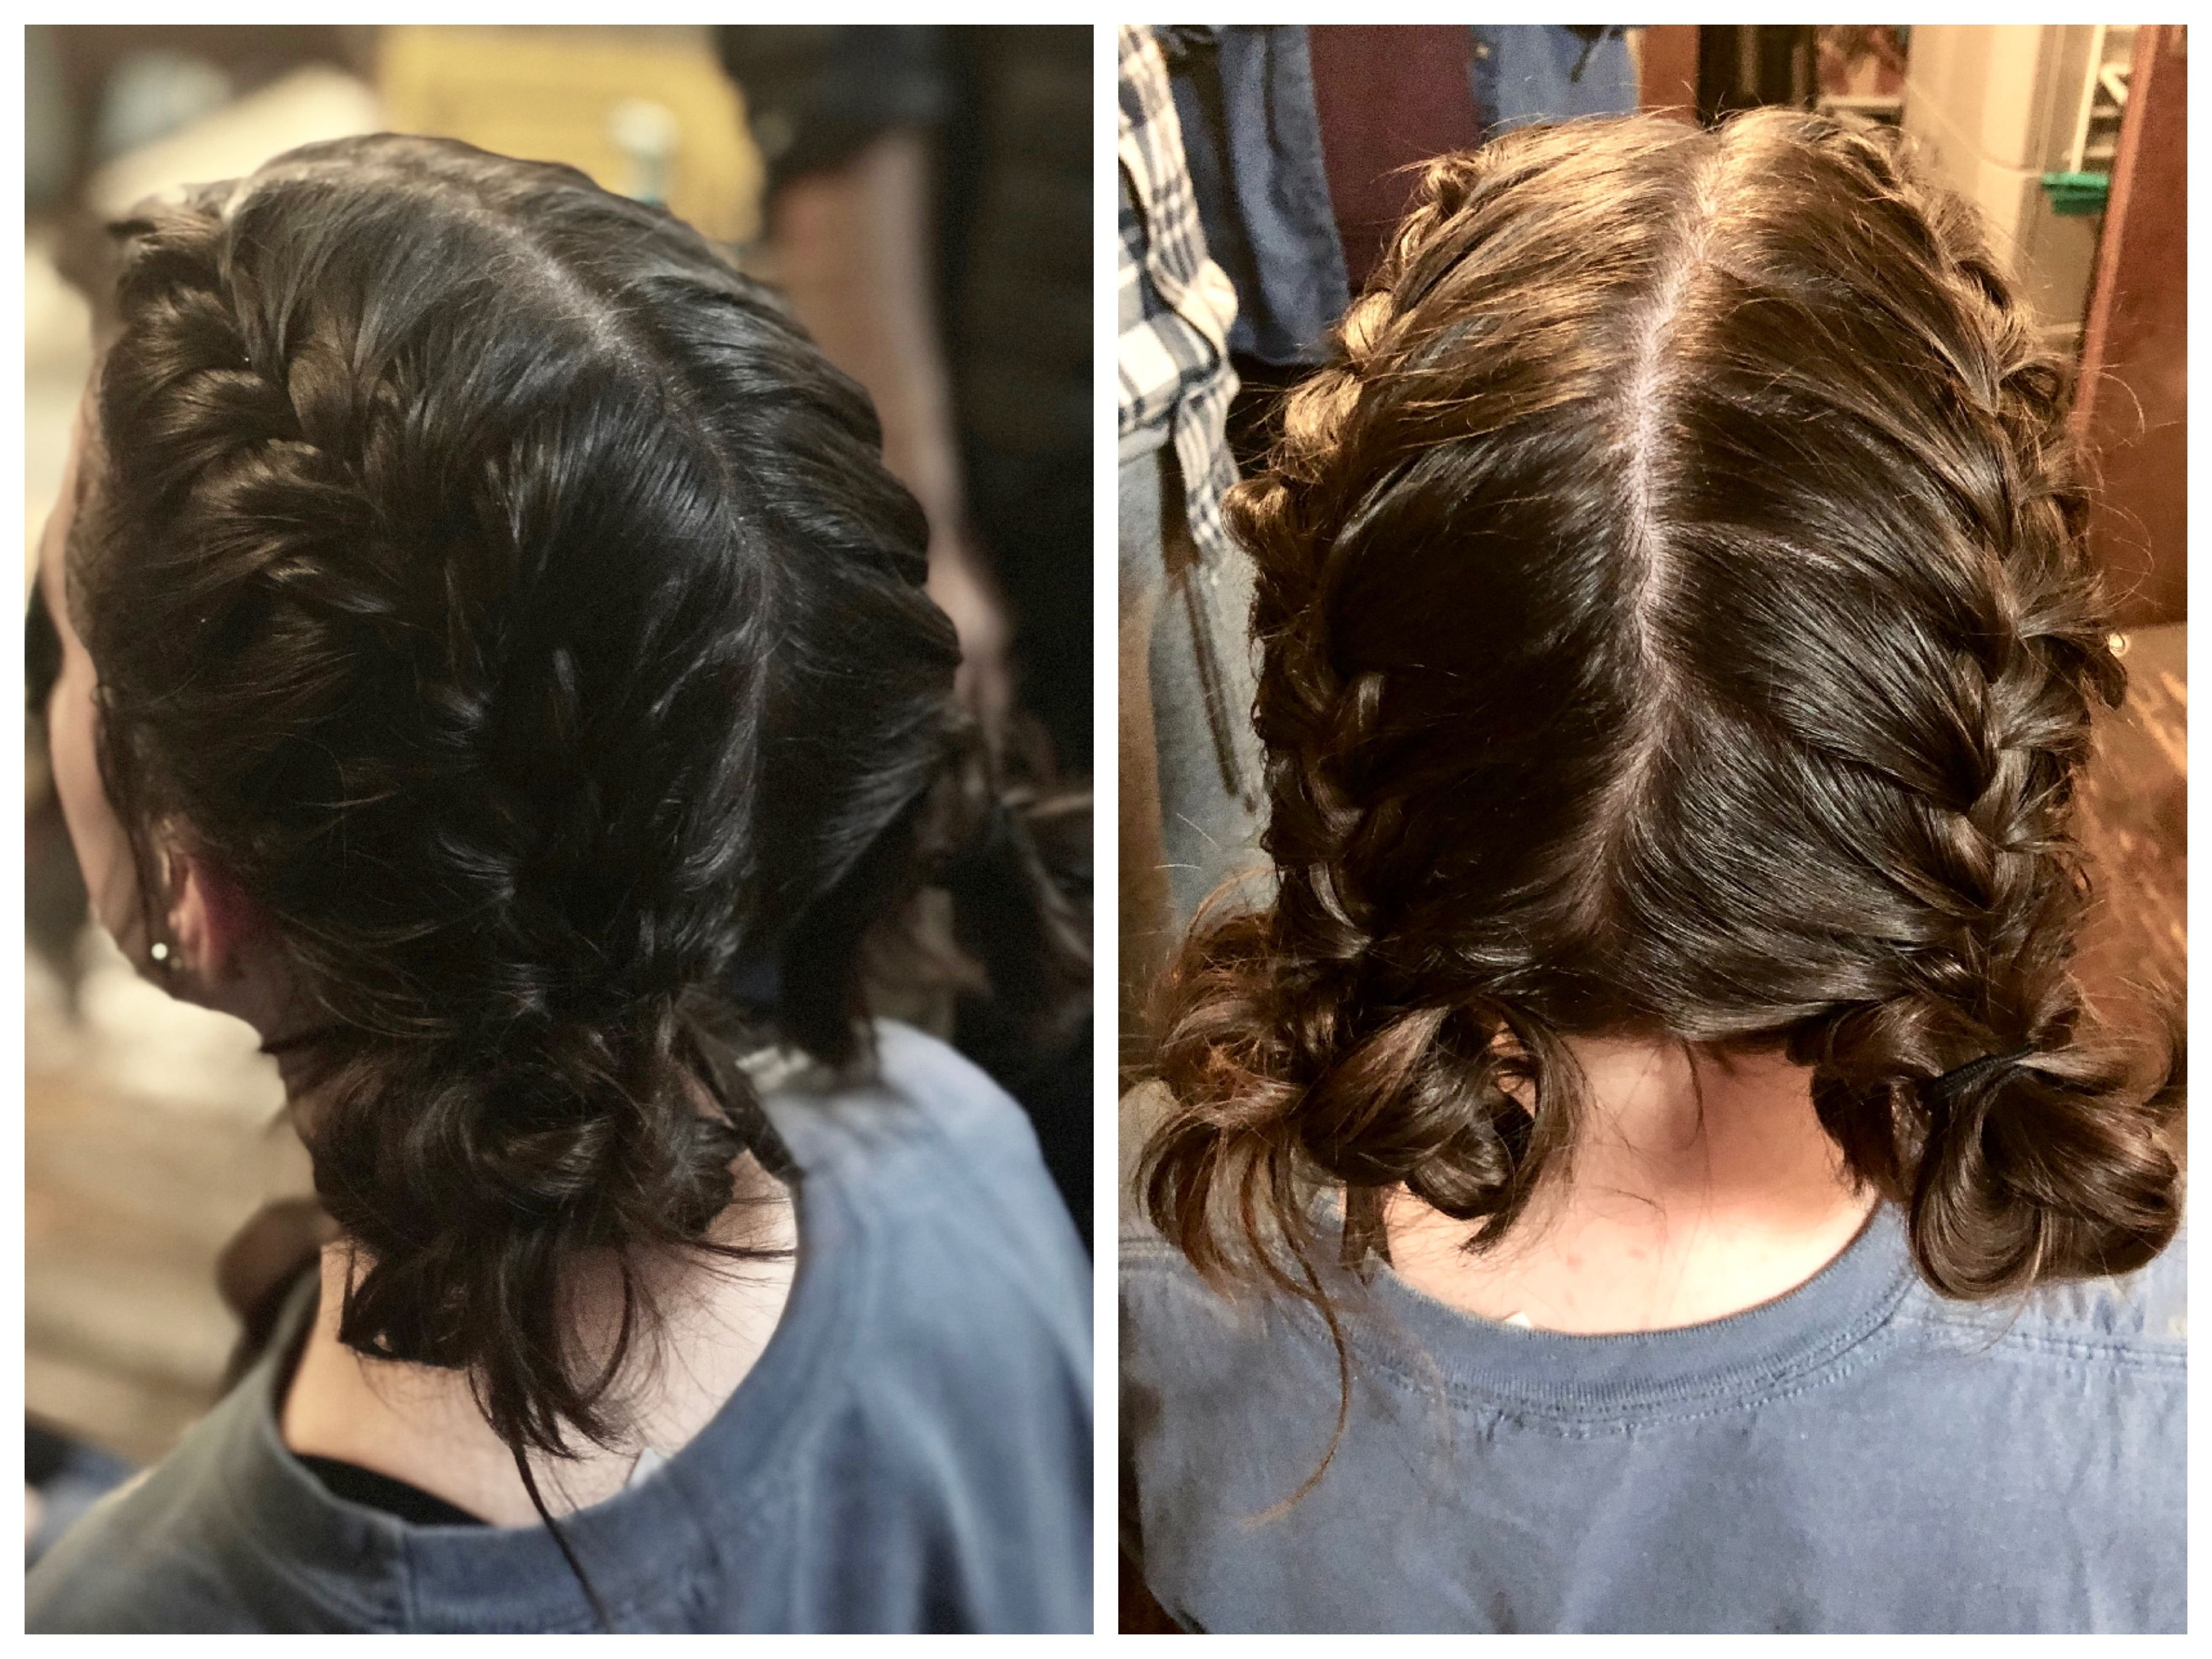 Cabin Social Maddy Double French Braids Into Messy Buns Double French Braids Braided Hairstyles Hair Treatment